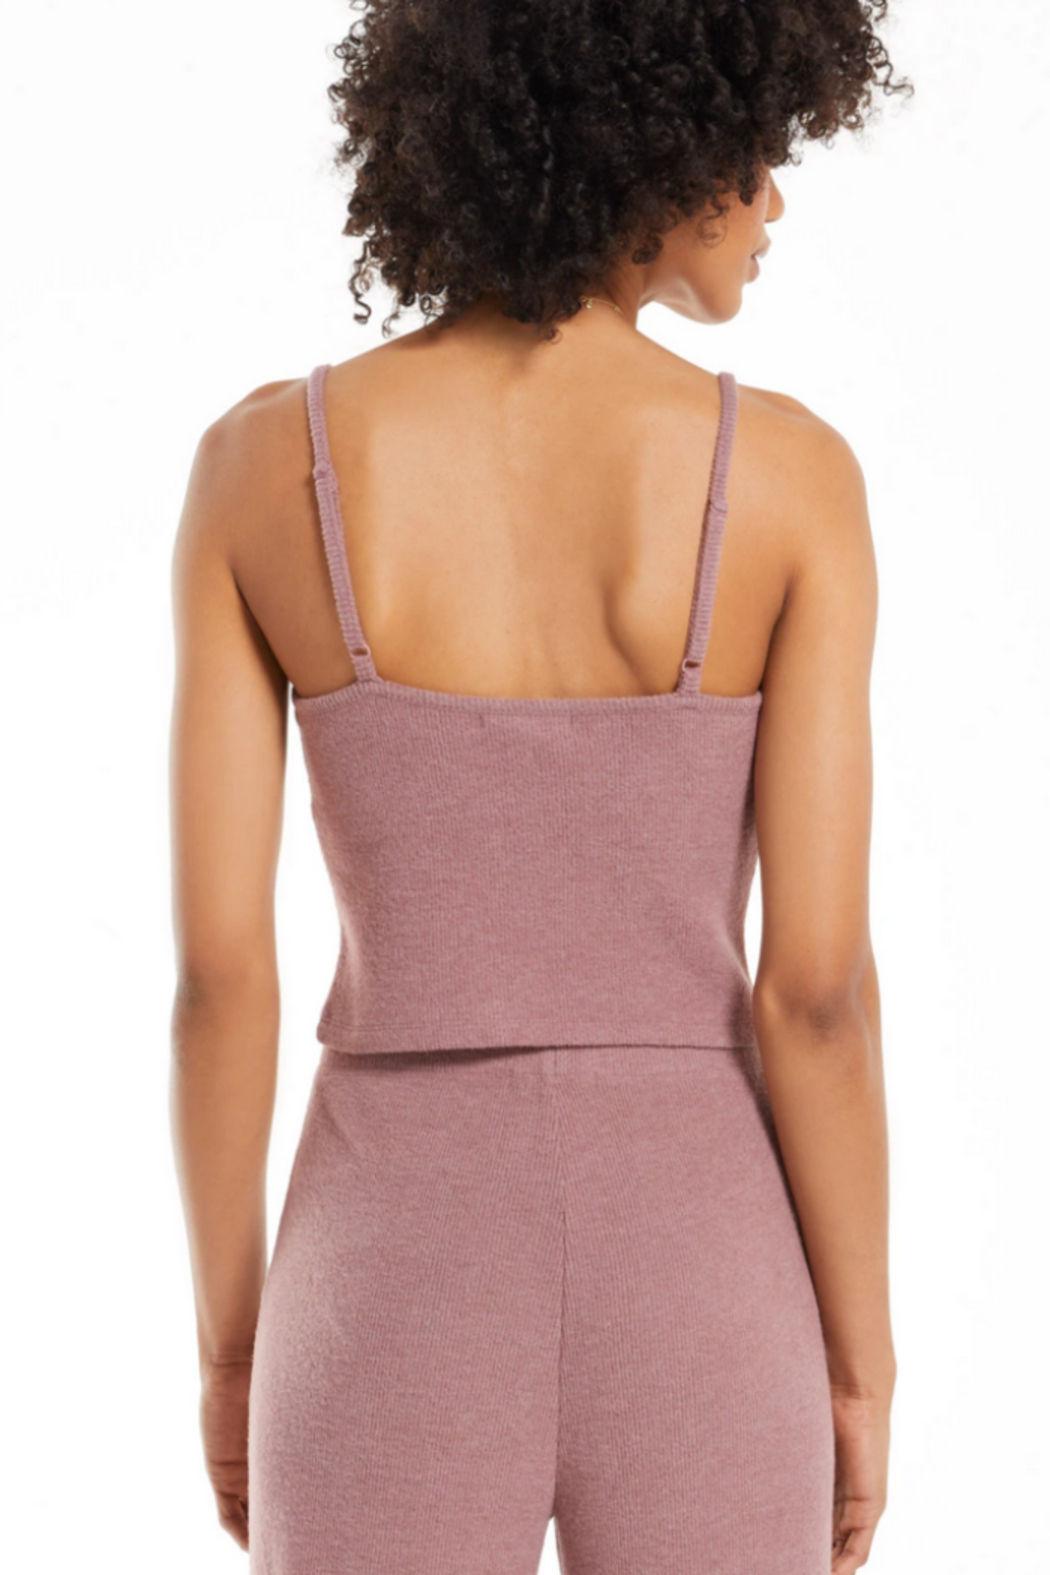 z supply Slay All Day Rib Crop Cami - Side Cropped Image